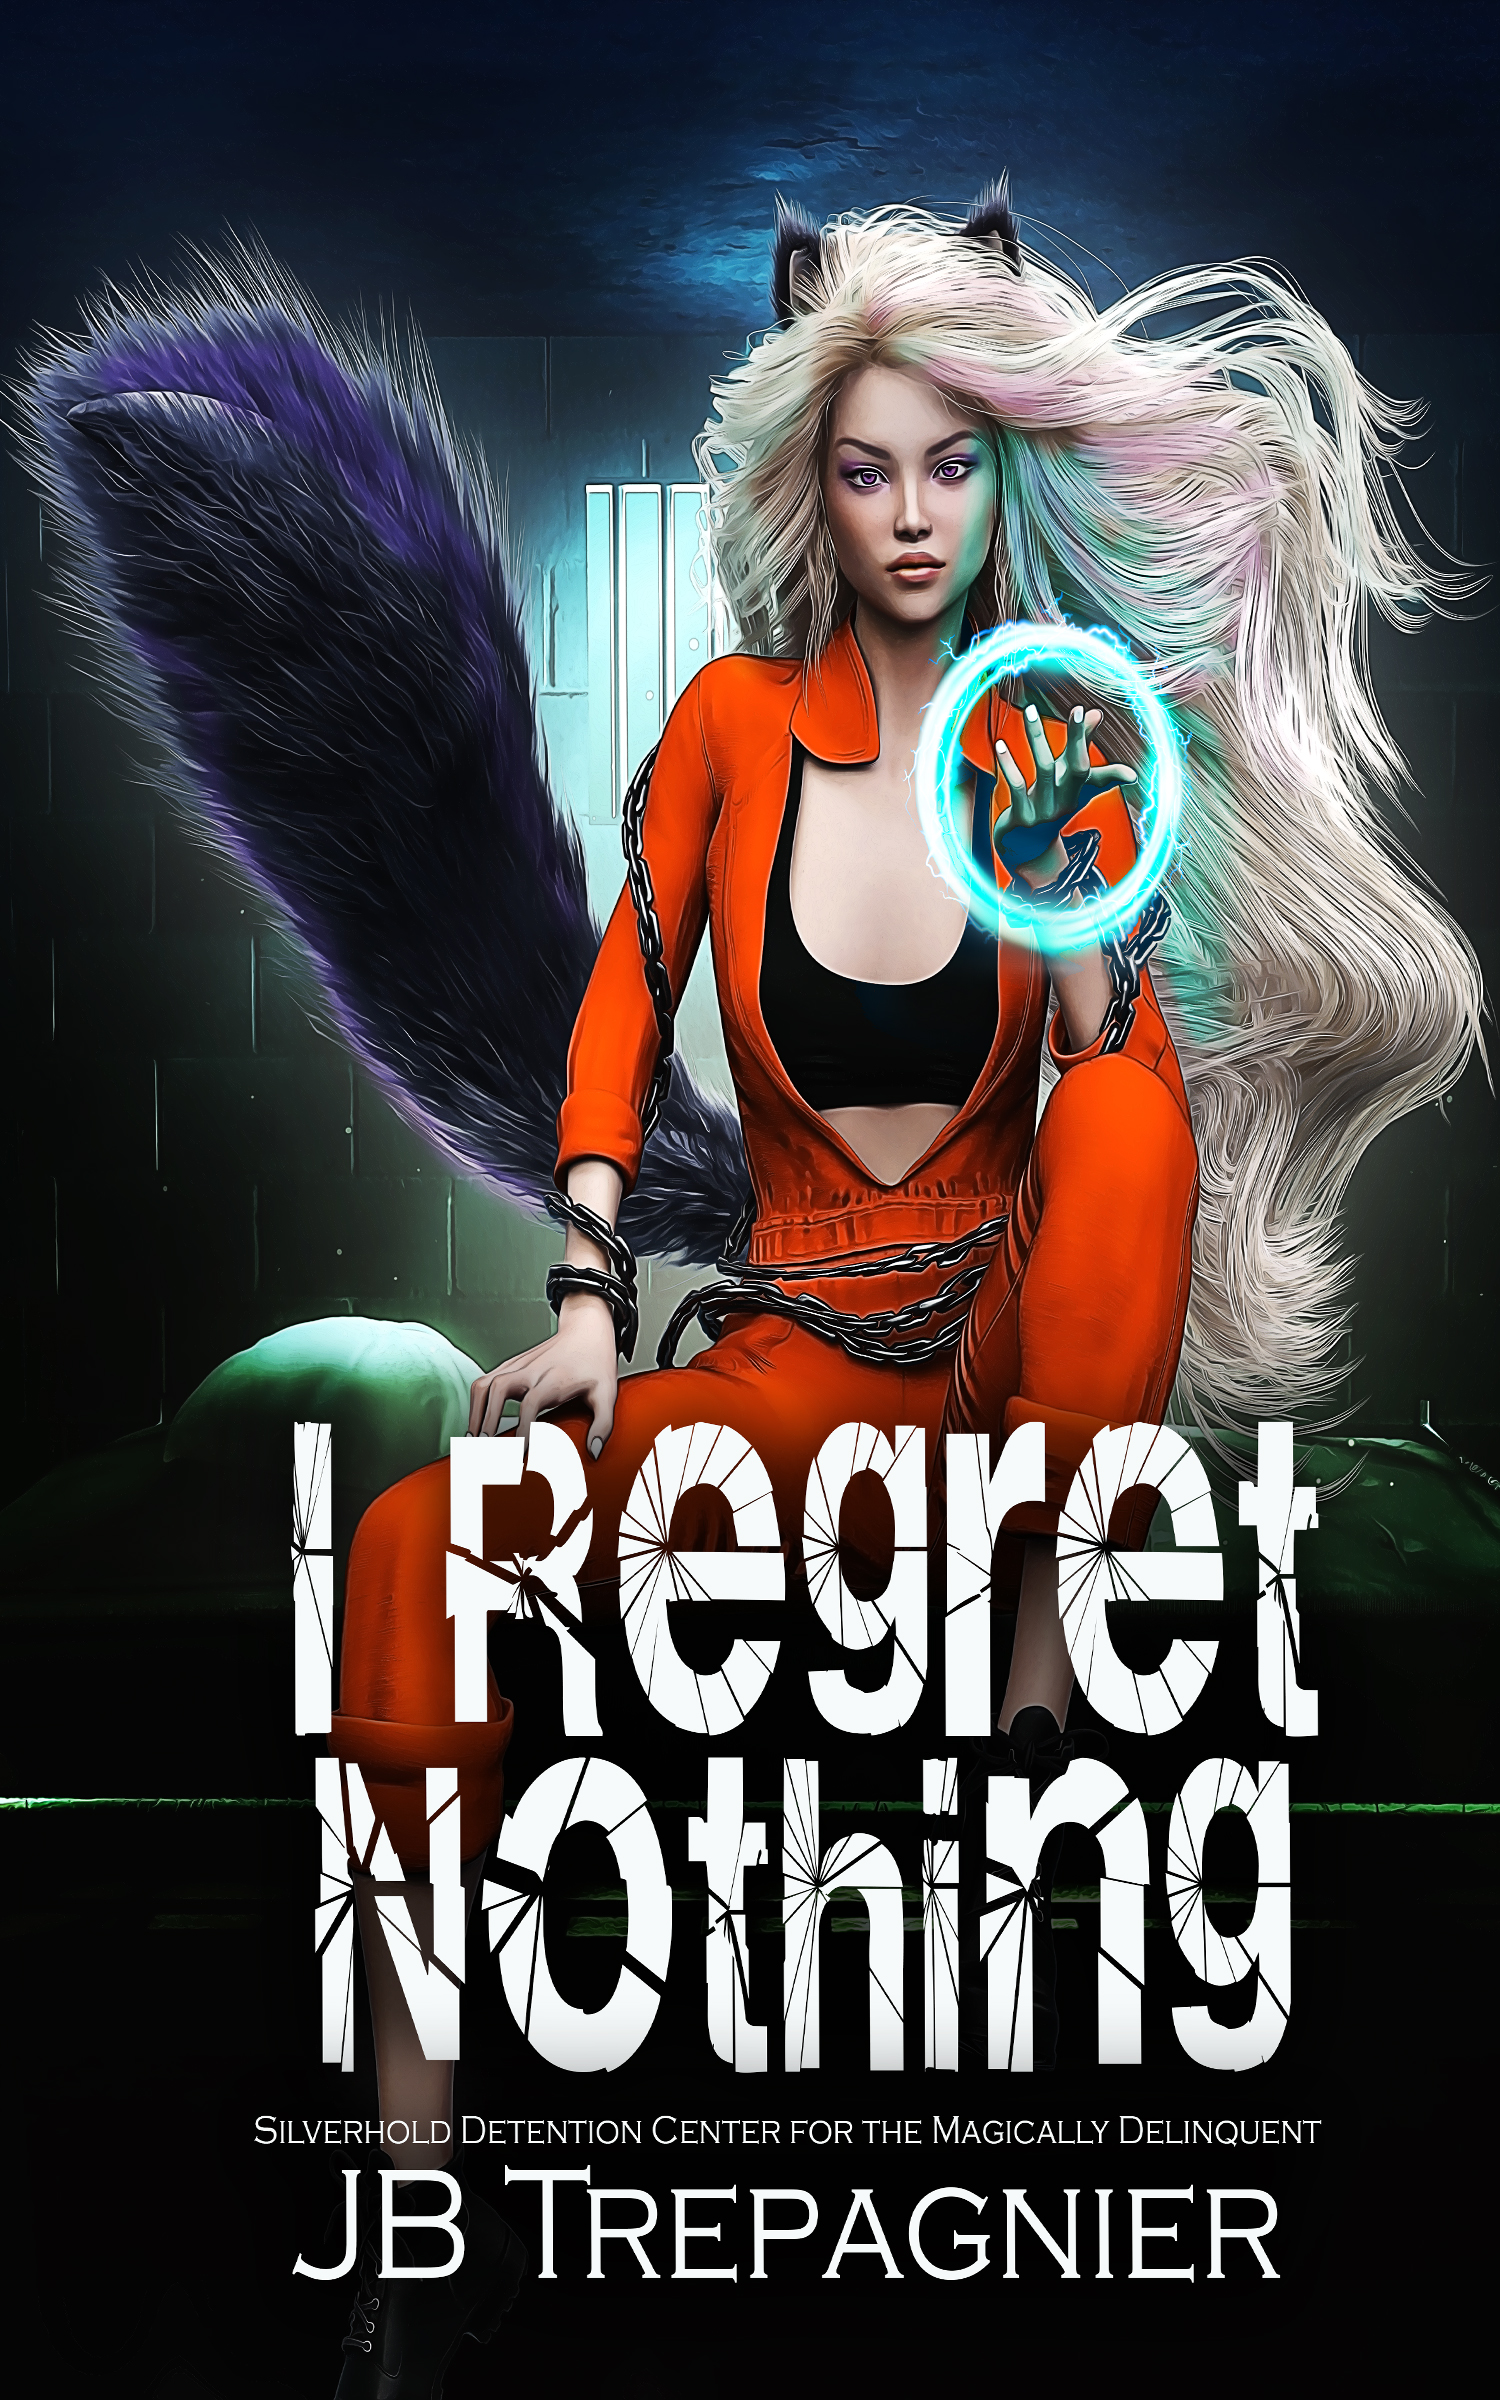 [PDF] [EPUB] I Regret Nothing (Silverhold Detention Center for the Magically Delinquent #1) Download by J.B. Trepagnier